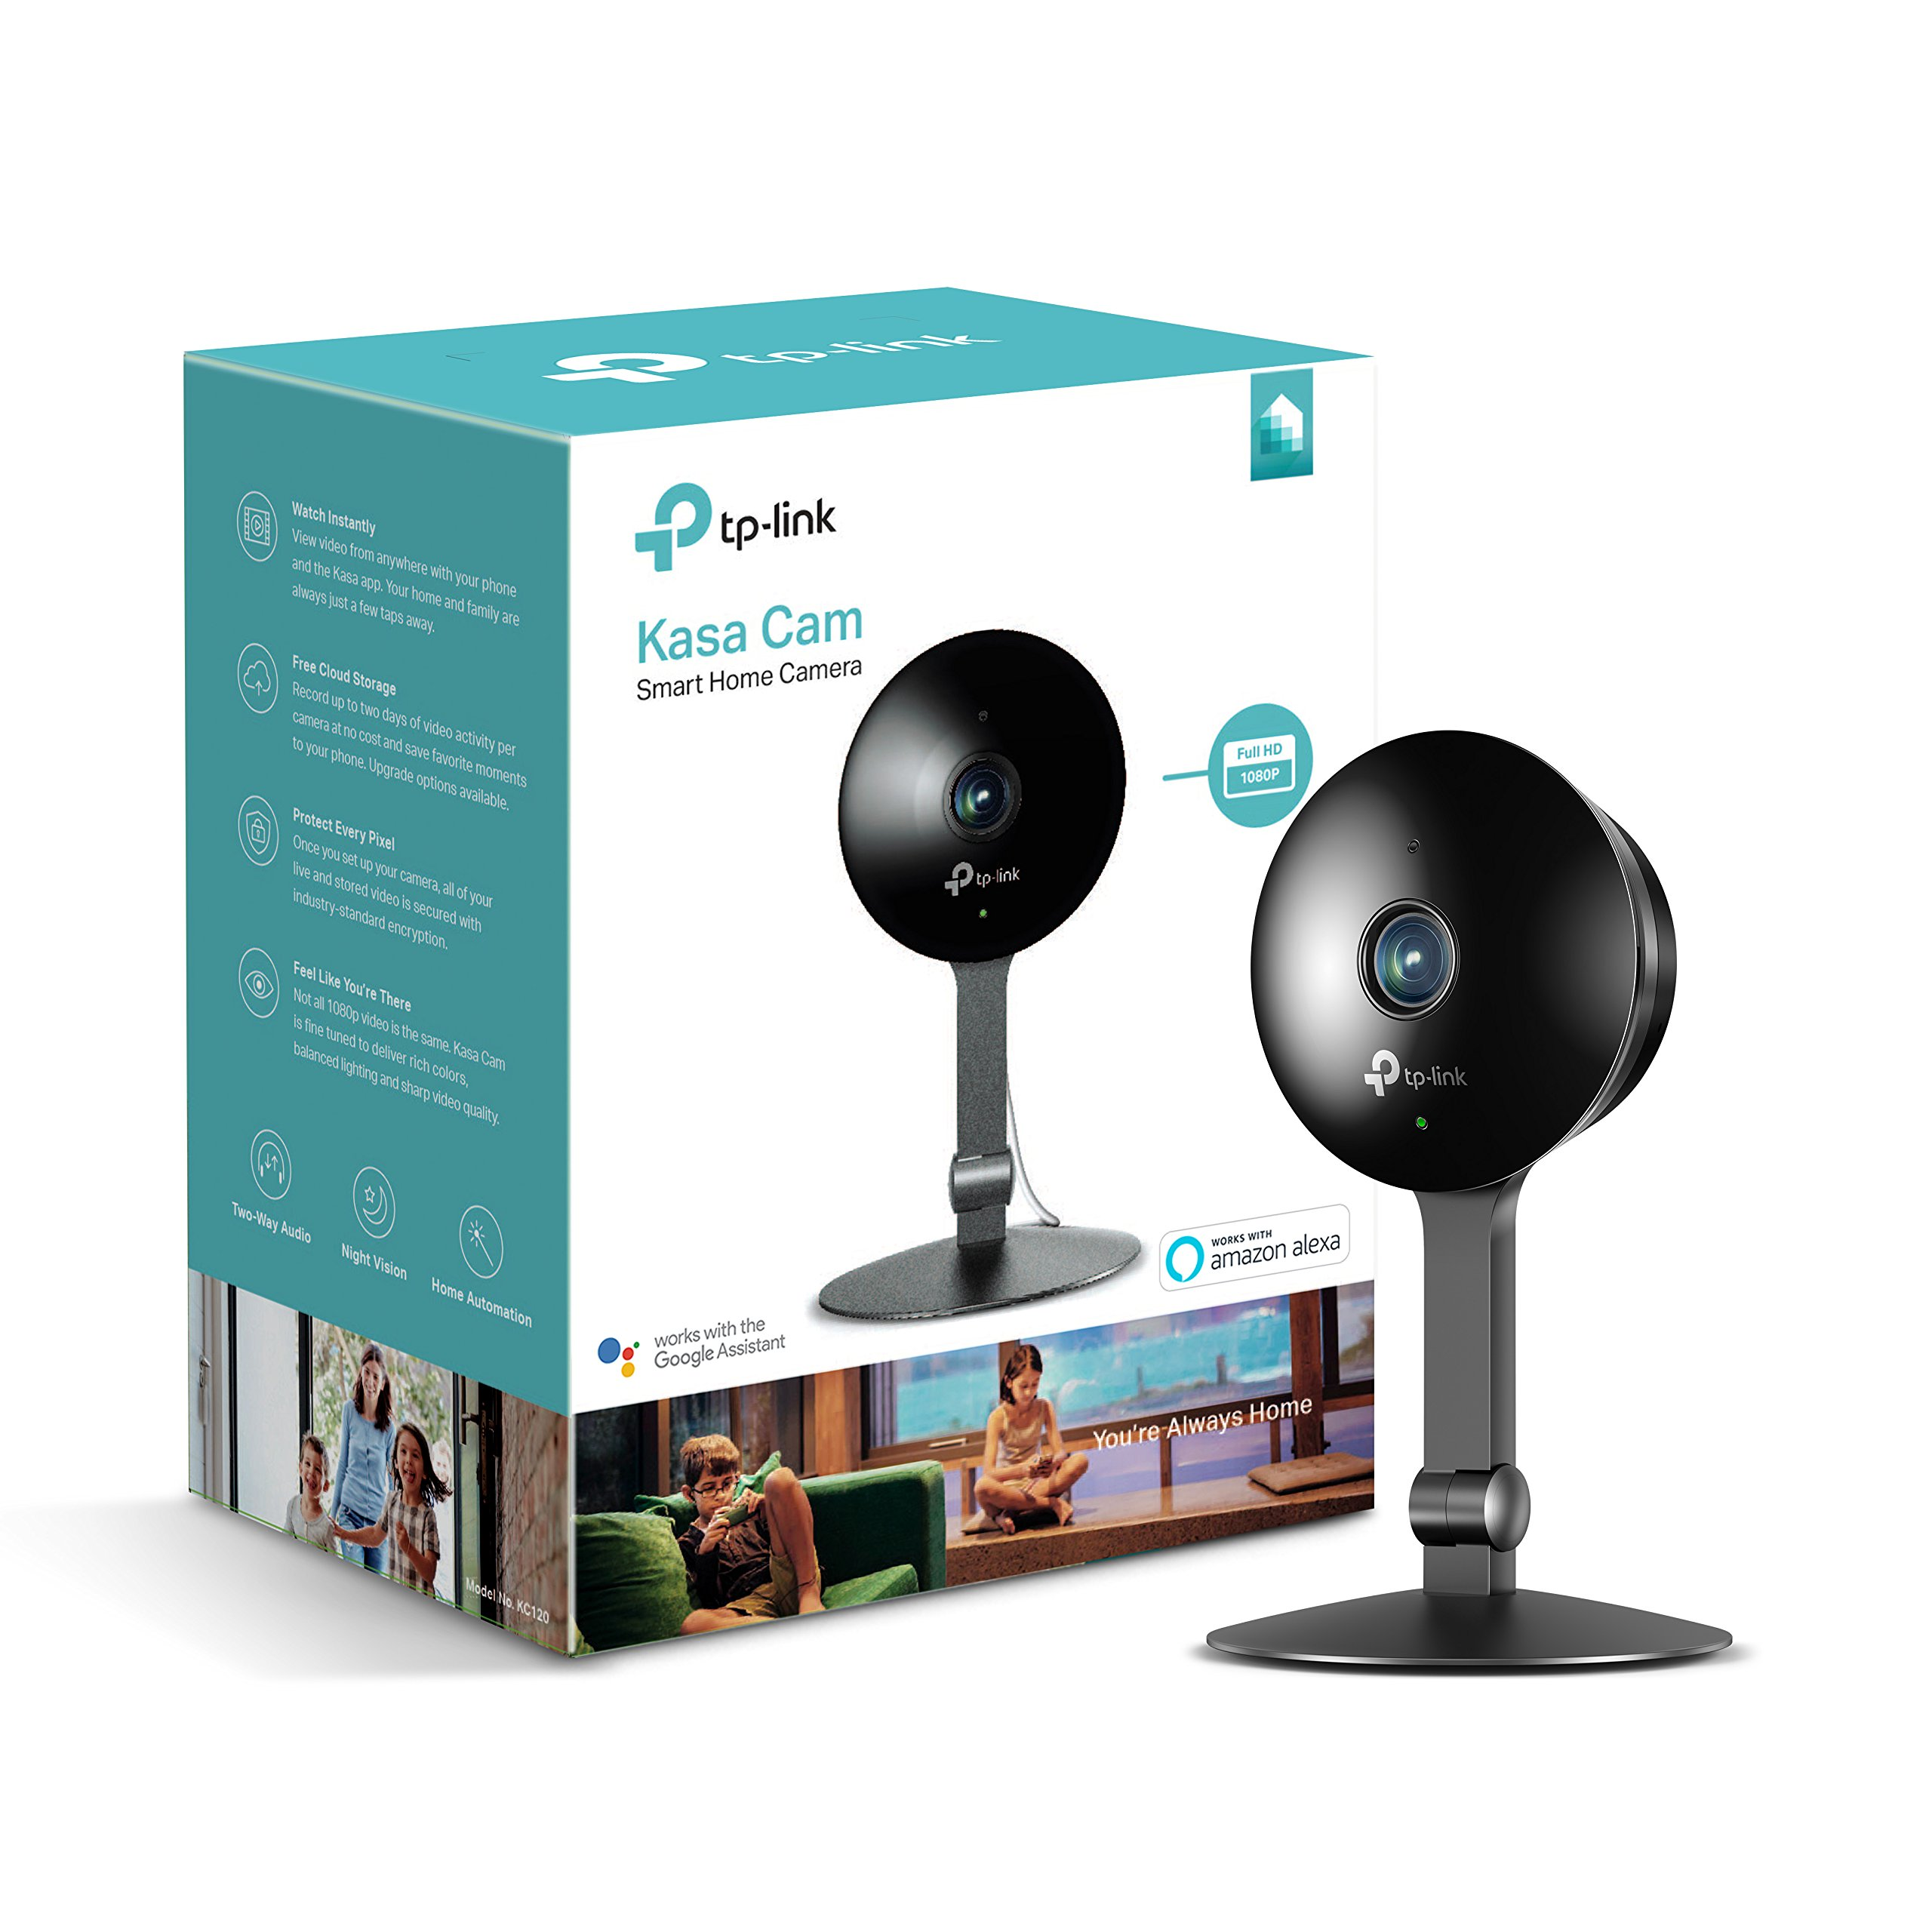 Kasa Cam 1080p Smart Home Security Camera by TP-Link, KC120, Works with Alexa (Echo Show/Fire TV), Google Assistant (Chromecast) by TP-Link